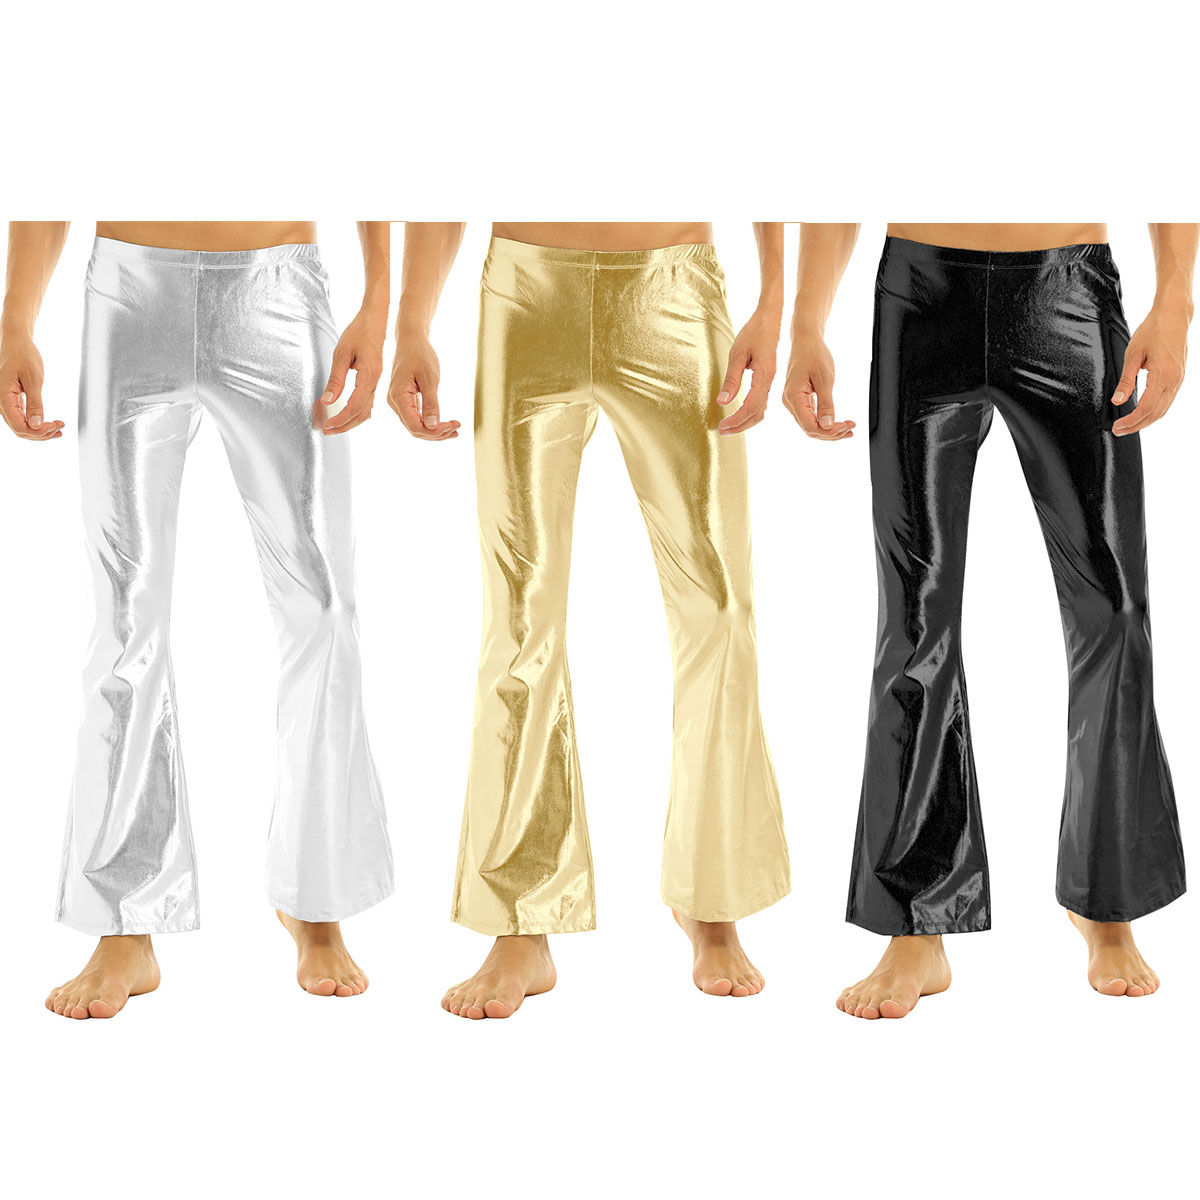 ChicTry Adults Mens Shiny Metallic Disco Pants with Bell Bottom Flared Long Pants Dude Costume Trousers for 70's Theme Parties 14